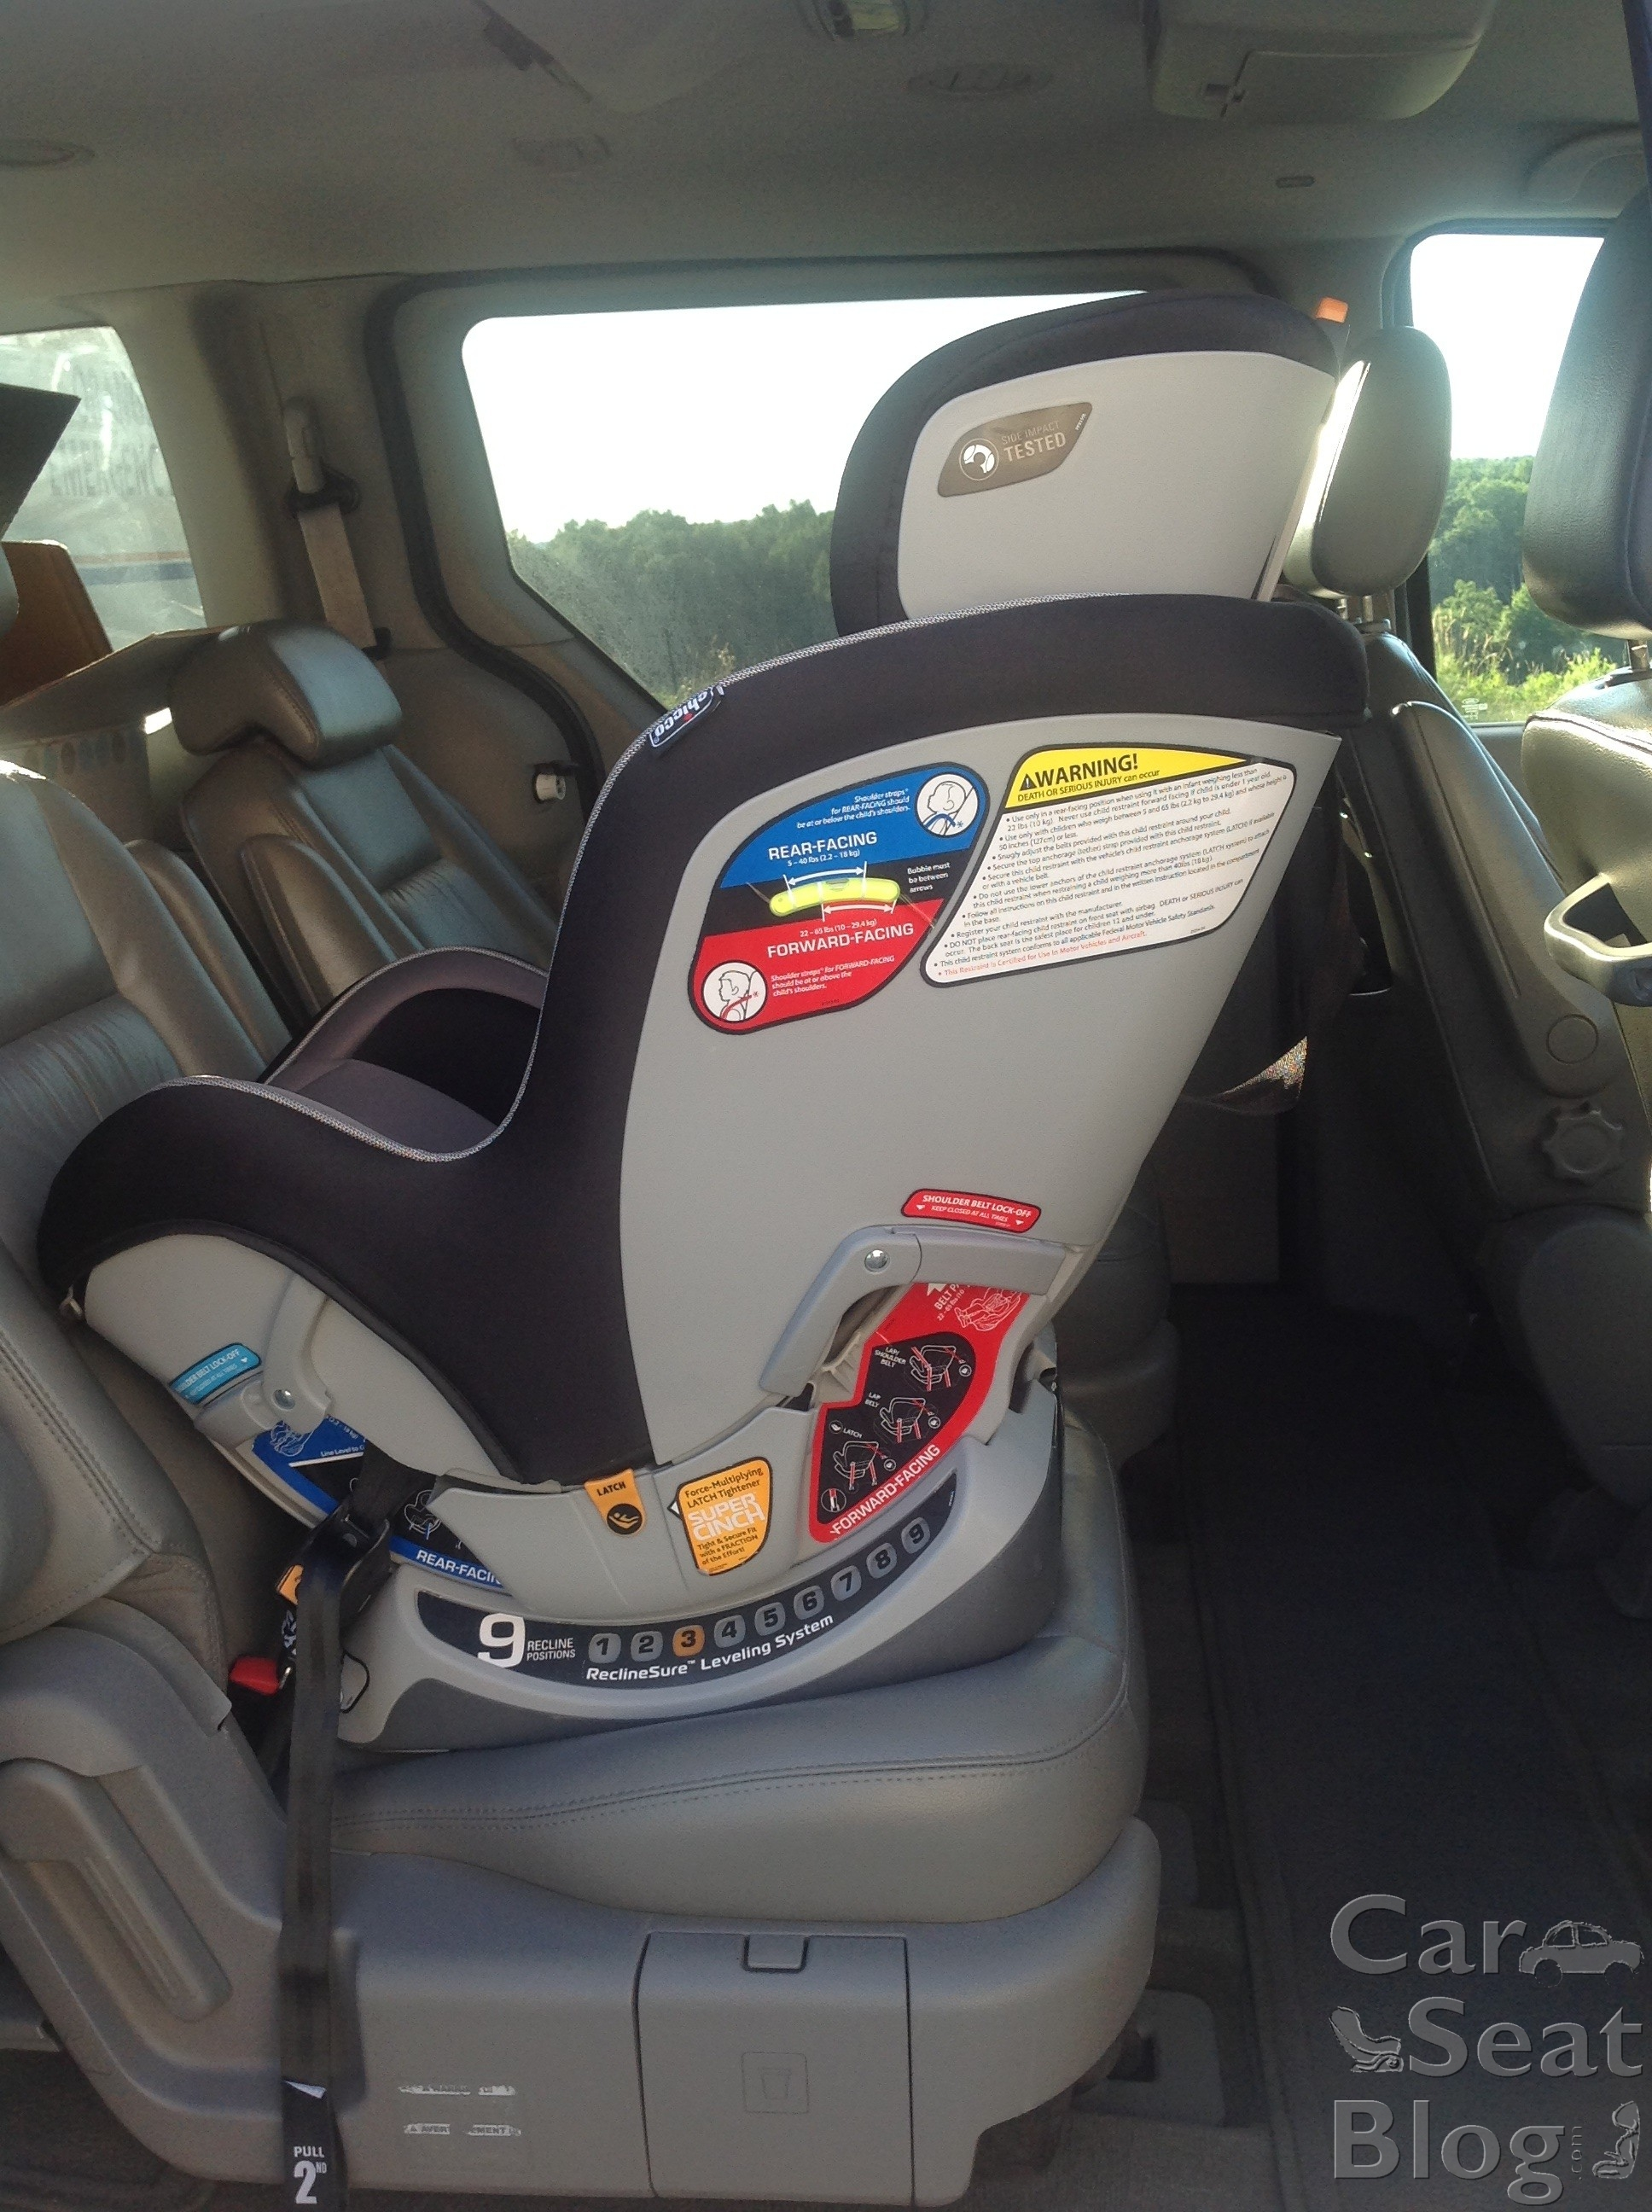 Chicco Nextfit Car Seat Cover Installation